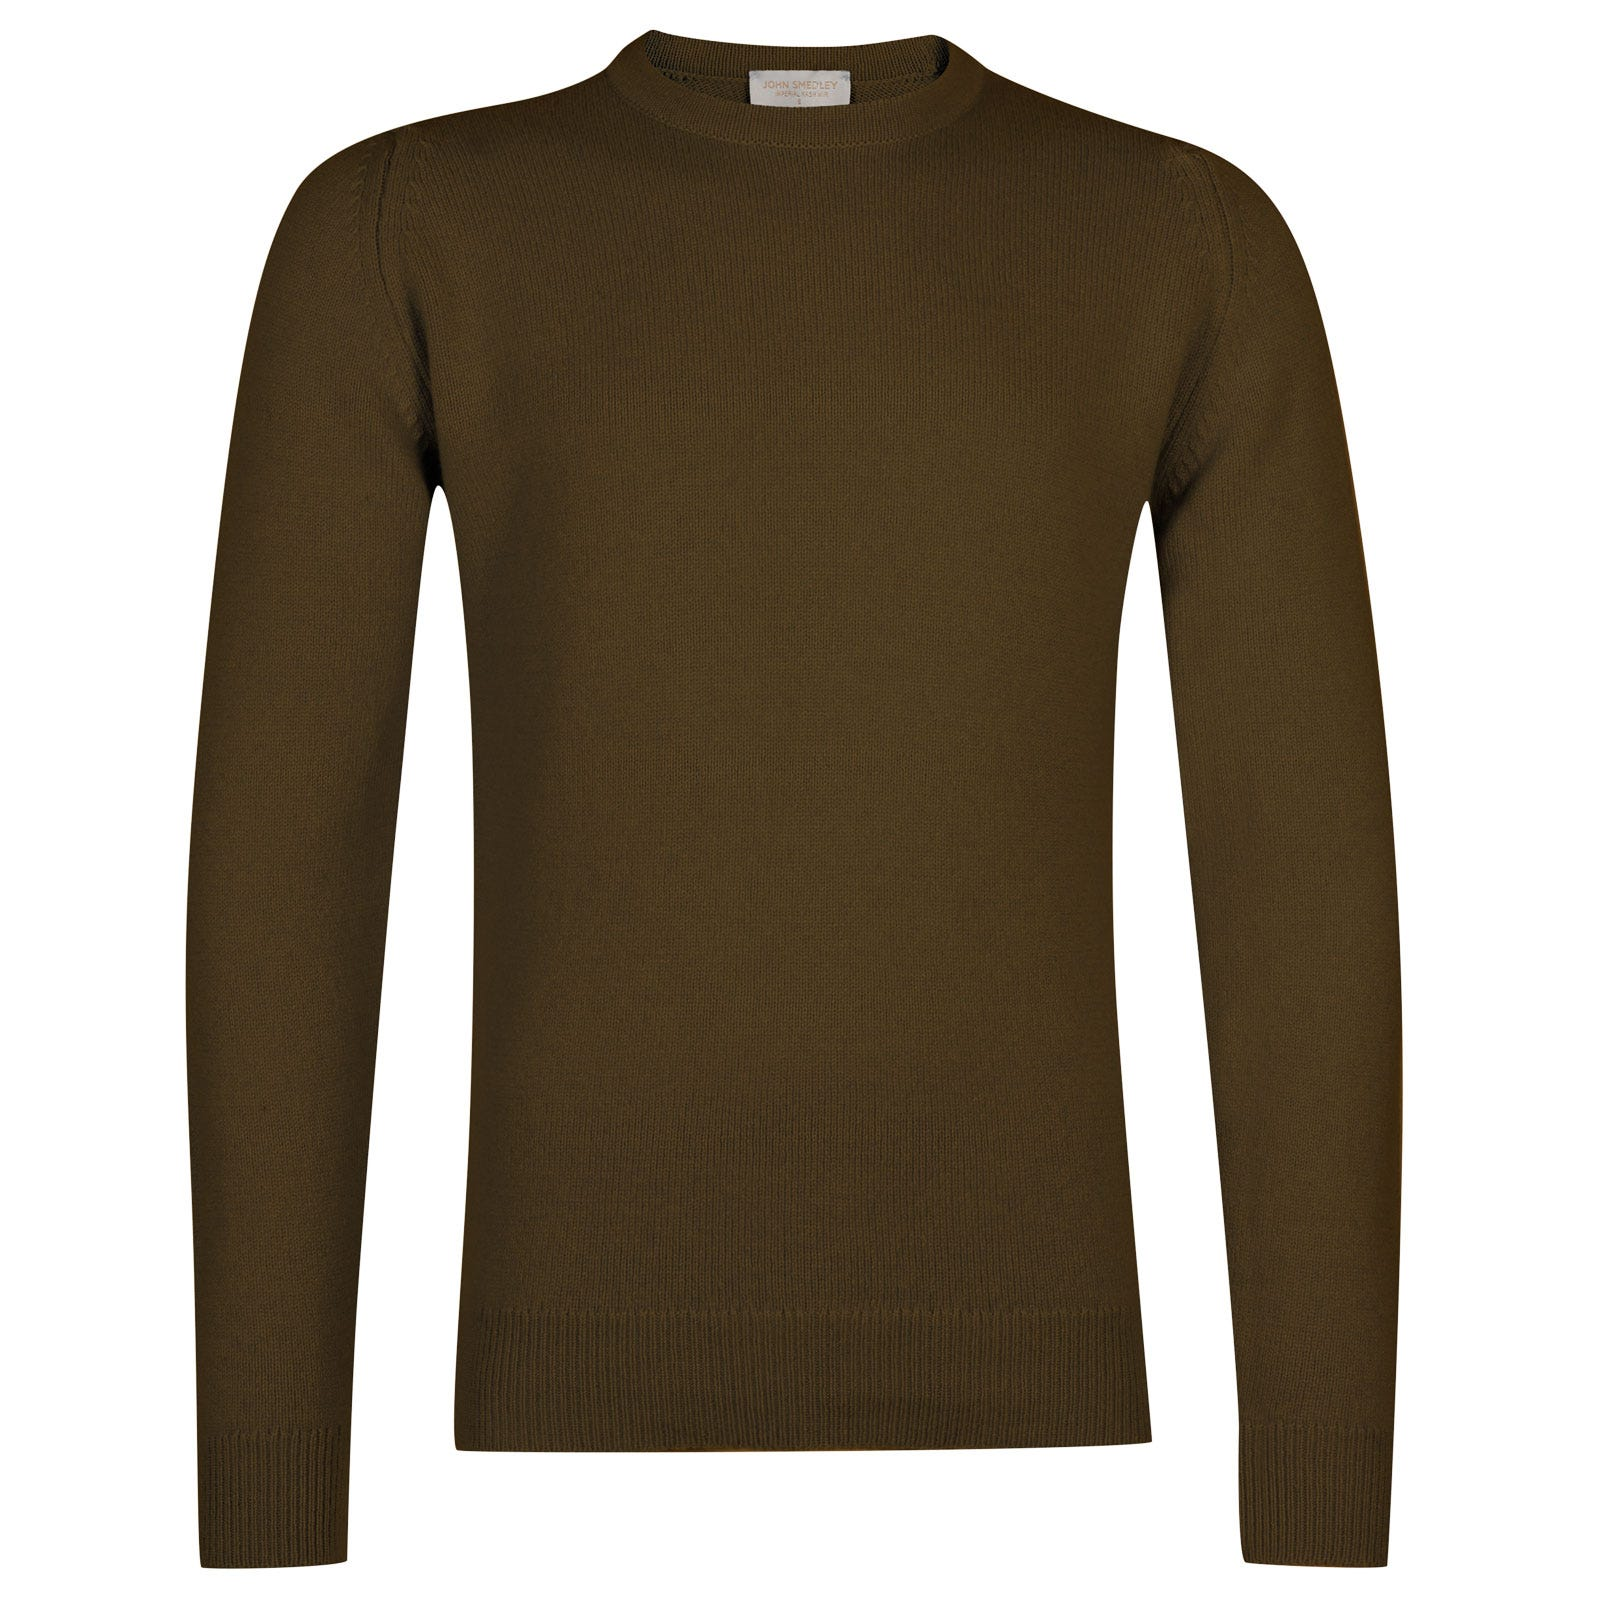 John Smedley Crowford Wool and Cashmere Pullover in Kielder Green-L